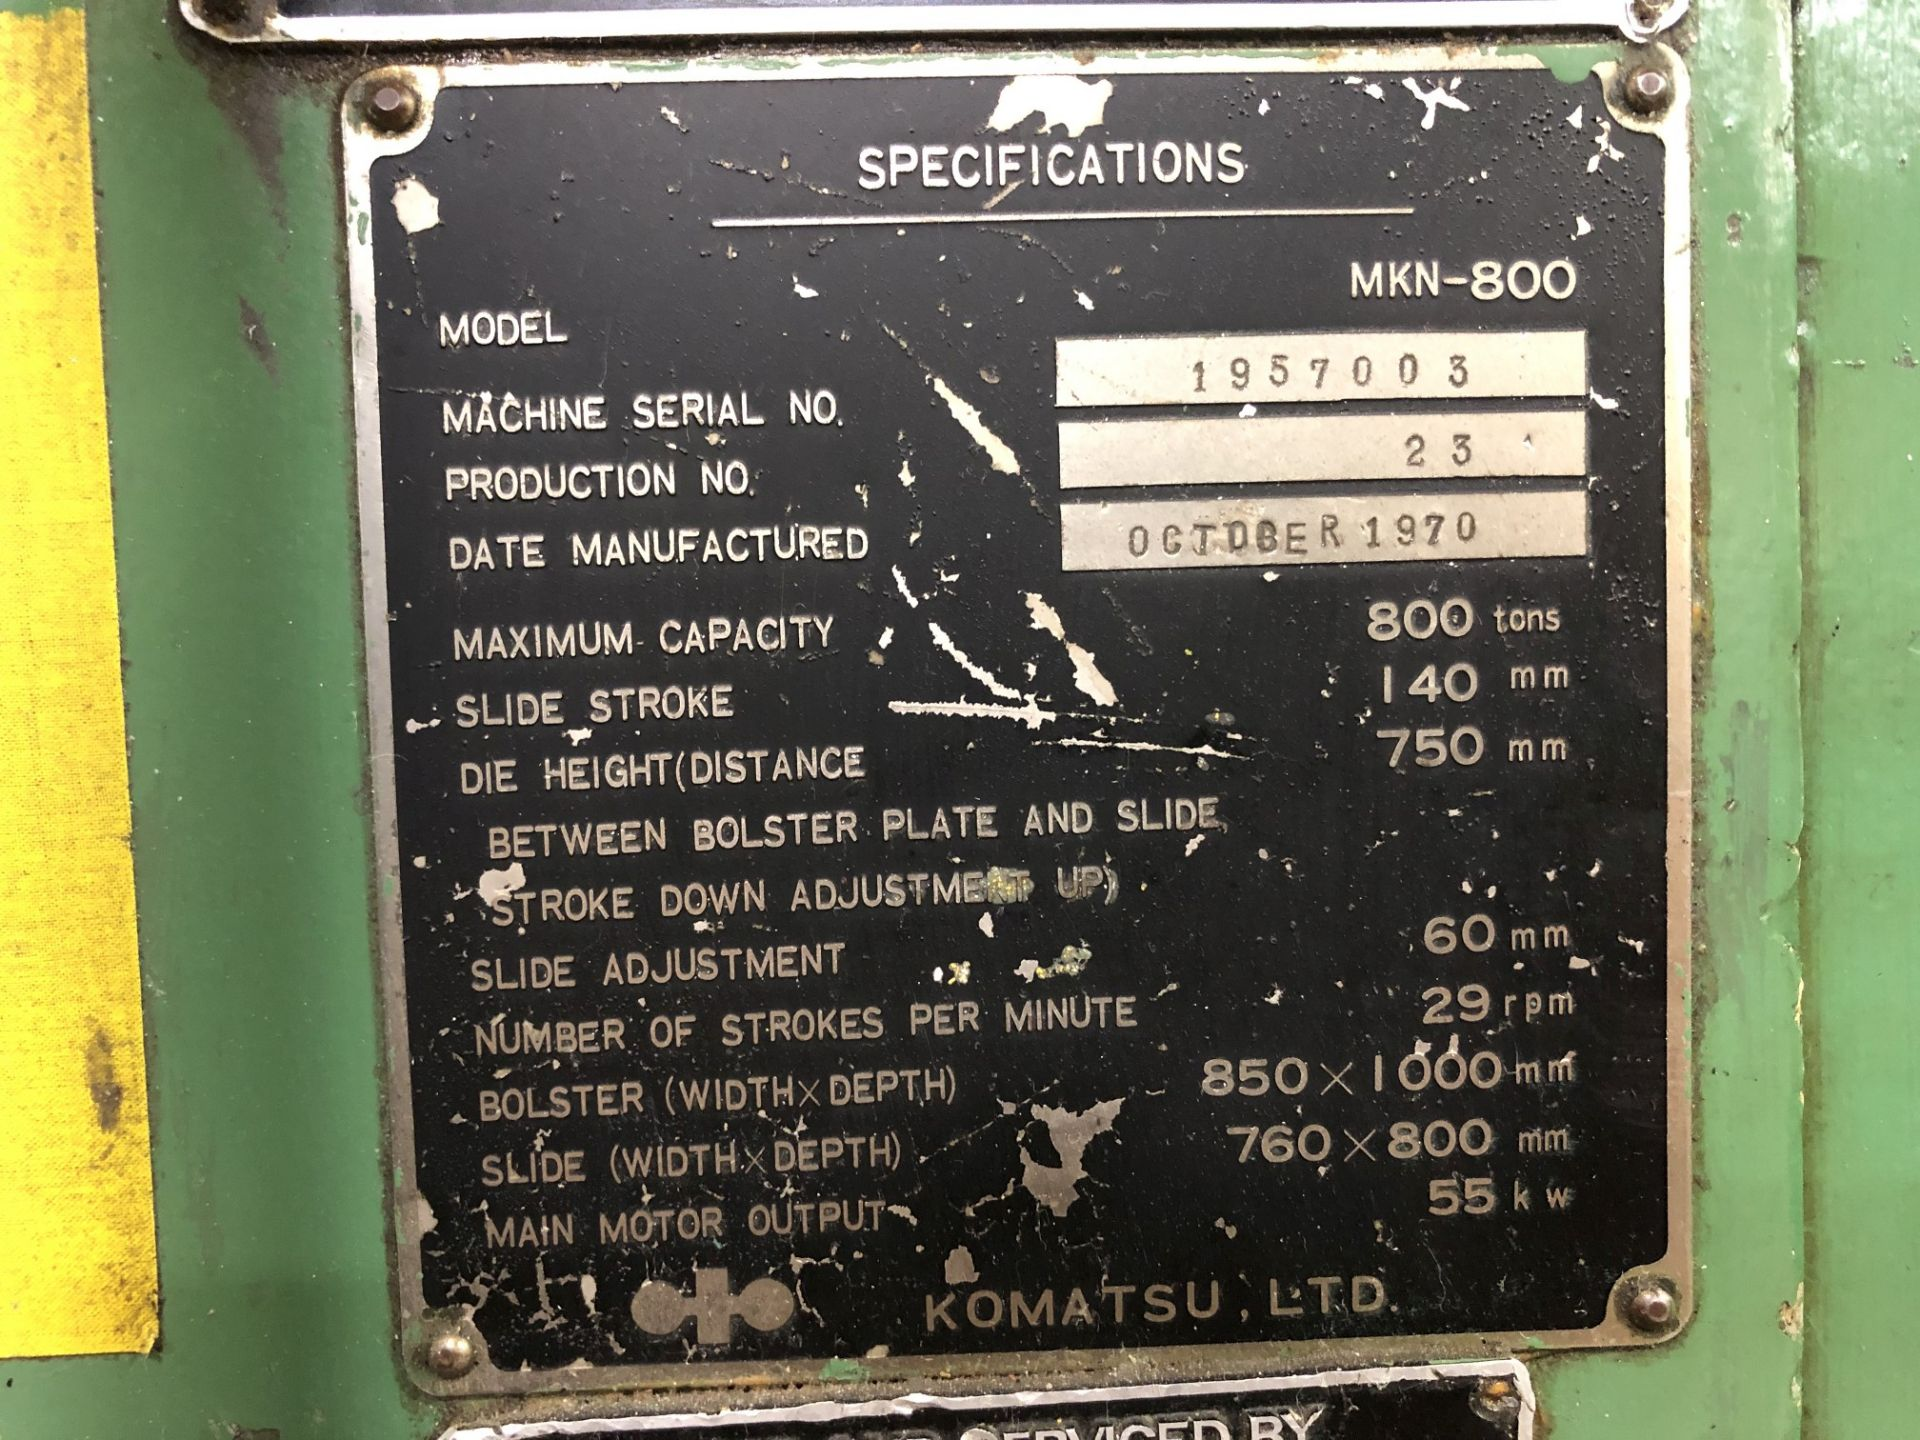 800 Ton Komatsu Maypress Knuckle Joint Press - Image 17 of 17